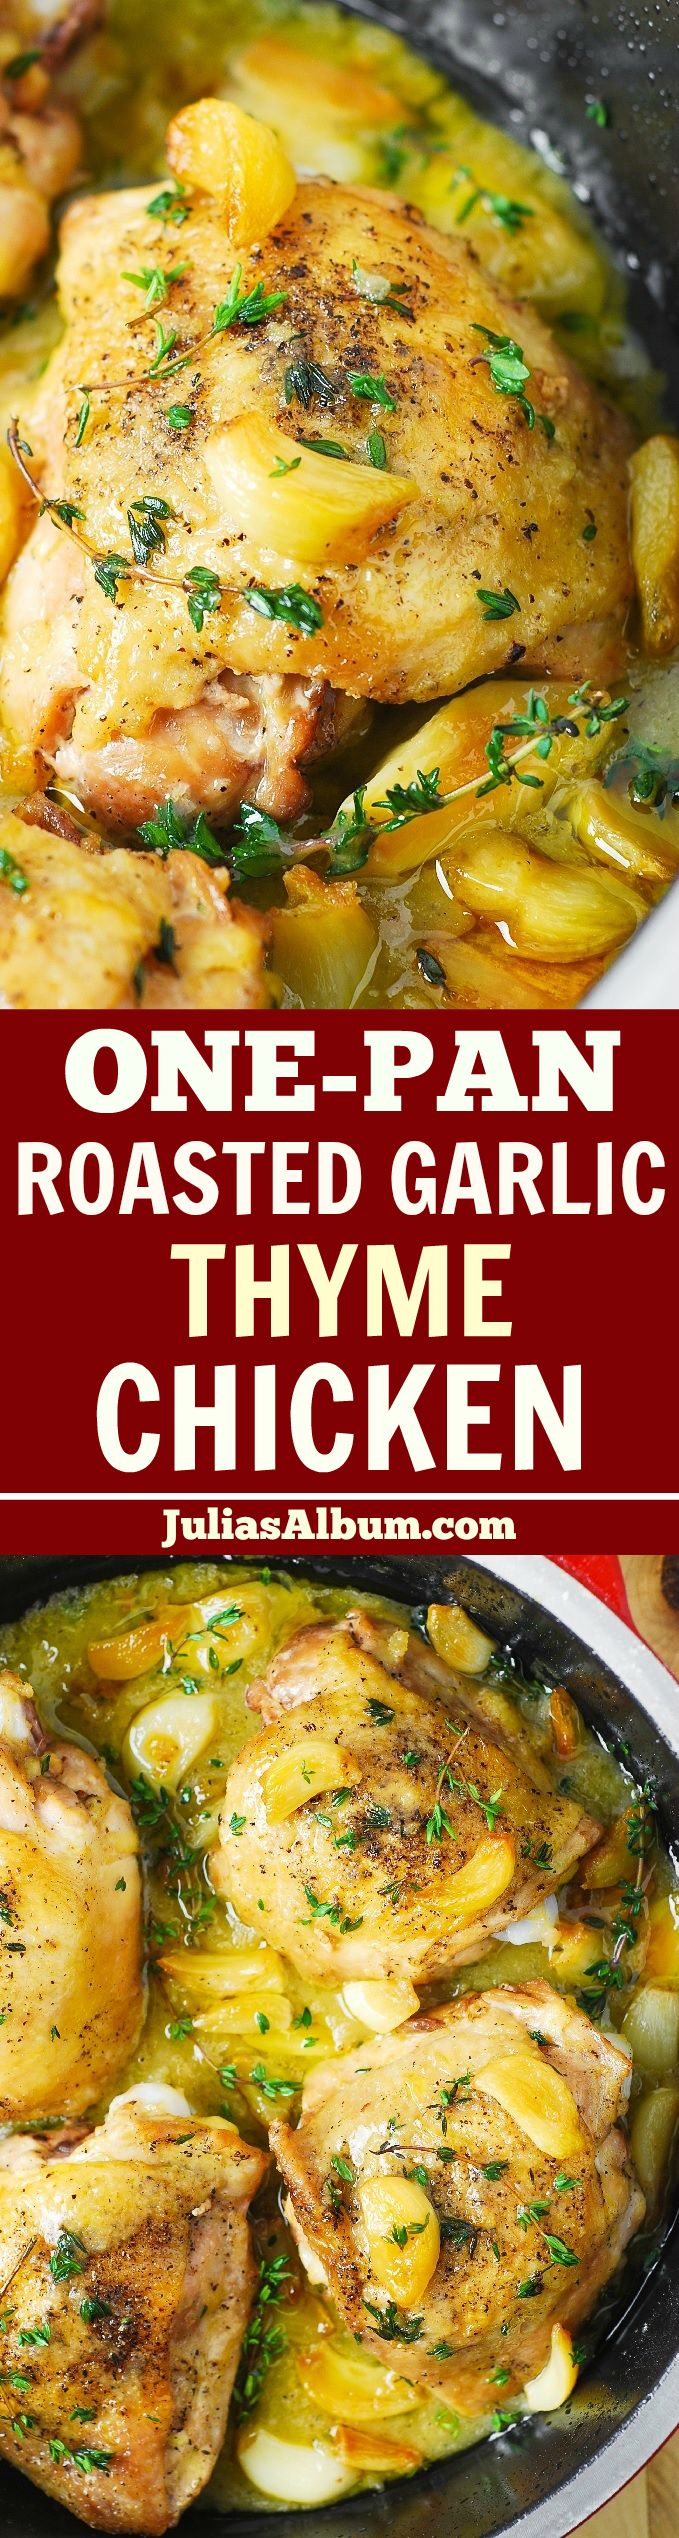 Garlic Thyme Chicken Thighs with a flavorful gravy - easy, 30-minute dish!  #ad #sponsored